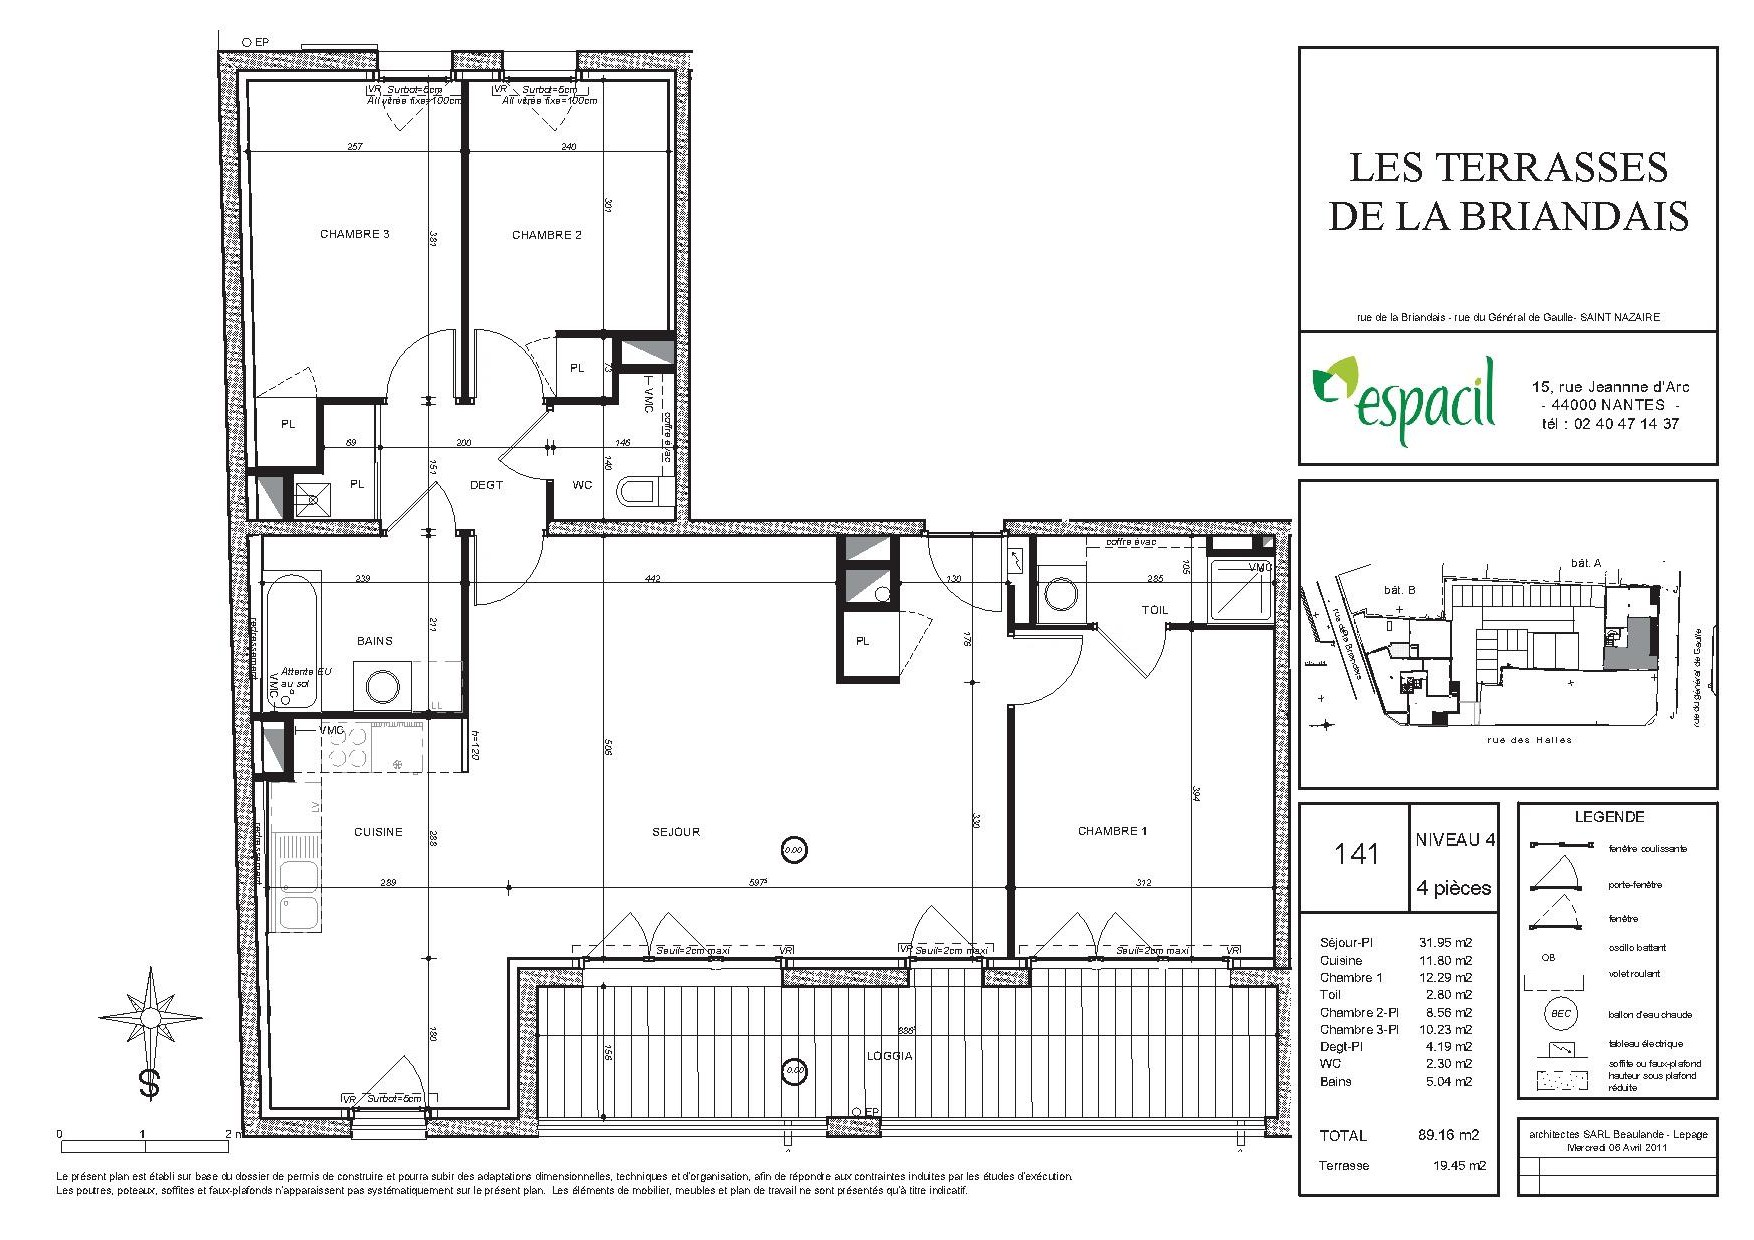 Appartement t4 les terrasses de la briandais saint nazaire for Plan appartement